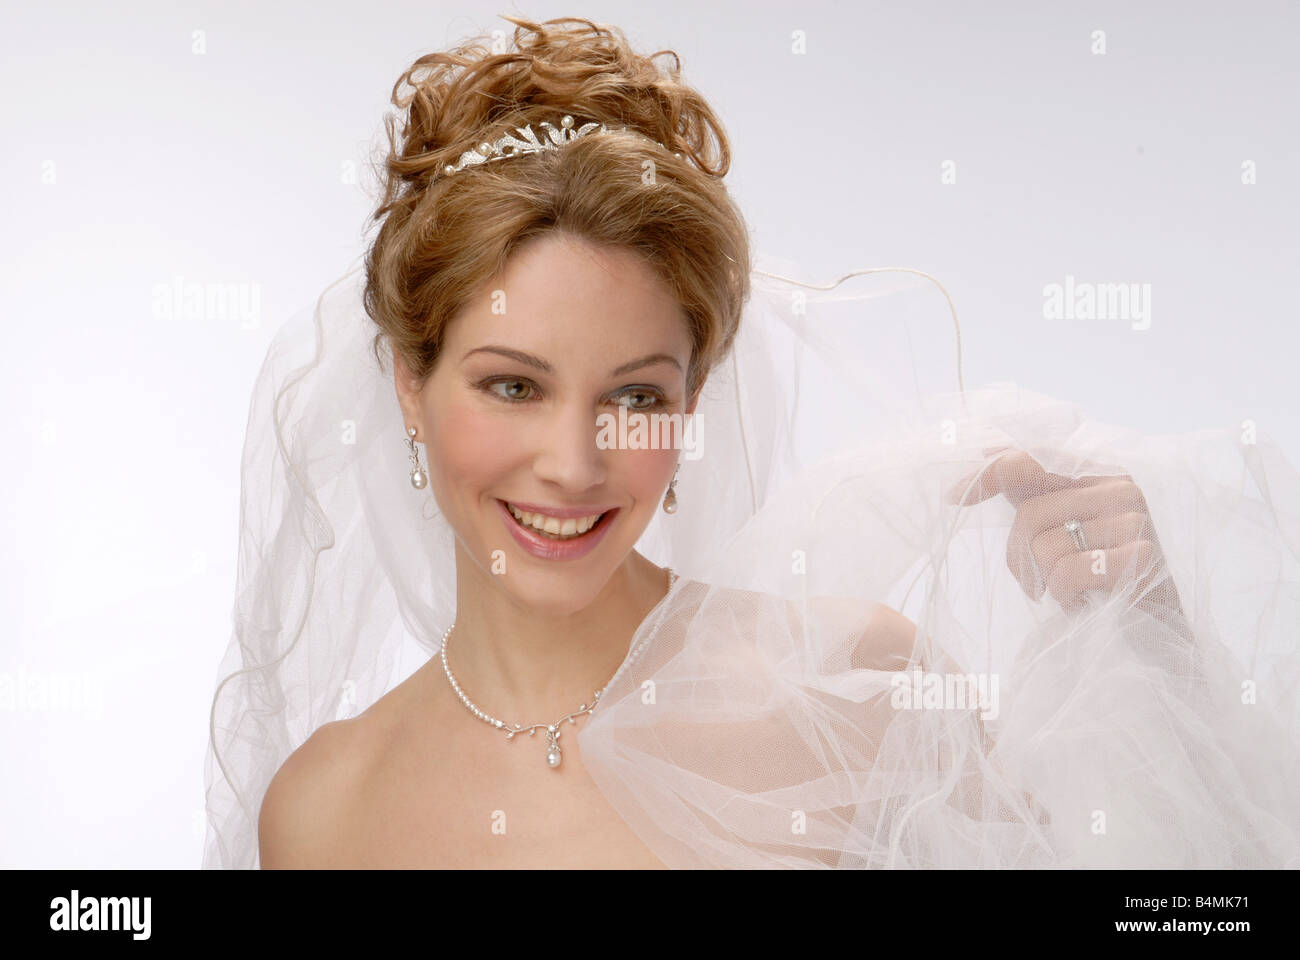 Radiant Bride Wedding Video Photography: Radiant Bride Showing Her Ring Ideal For A Double Page